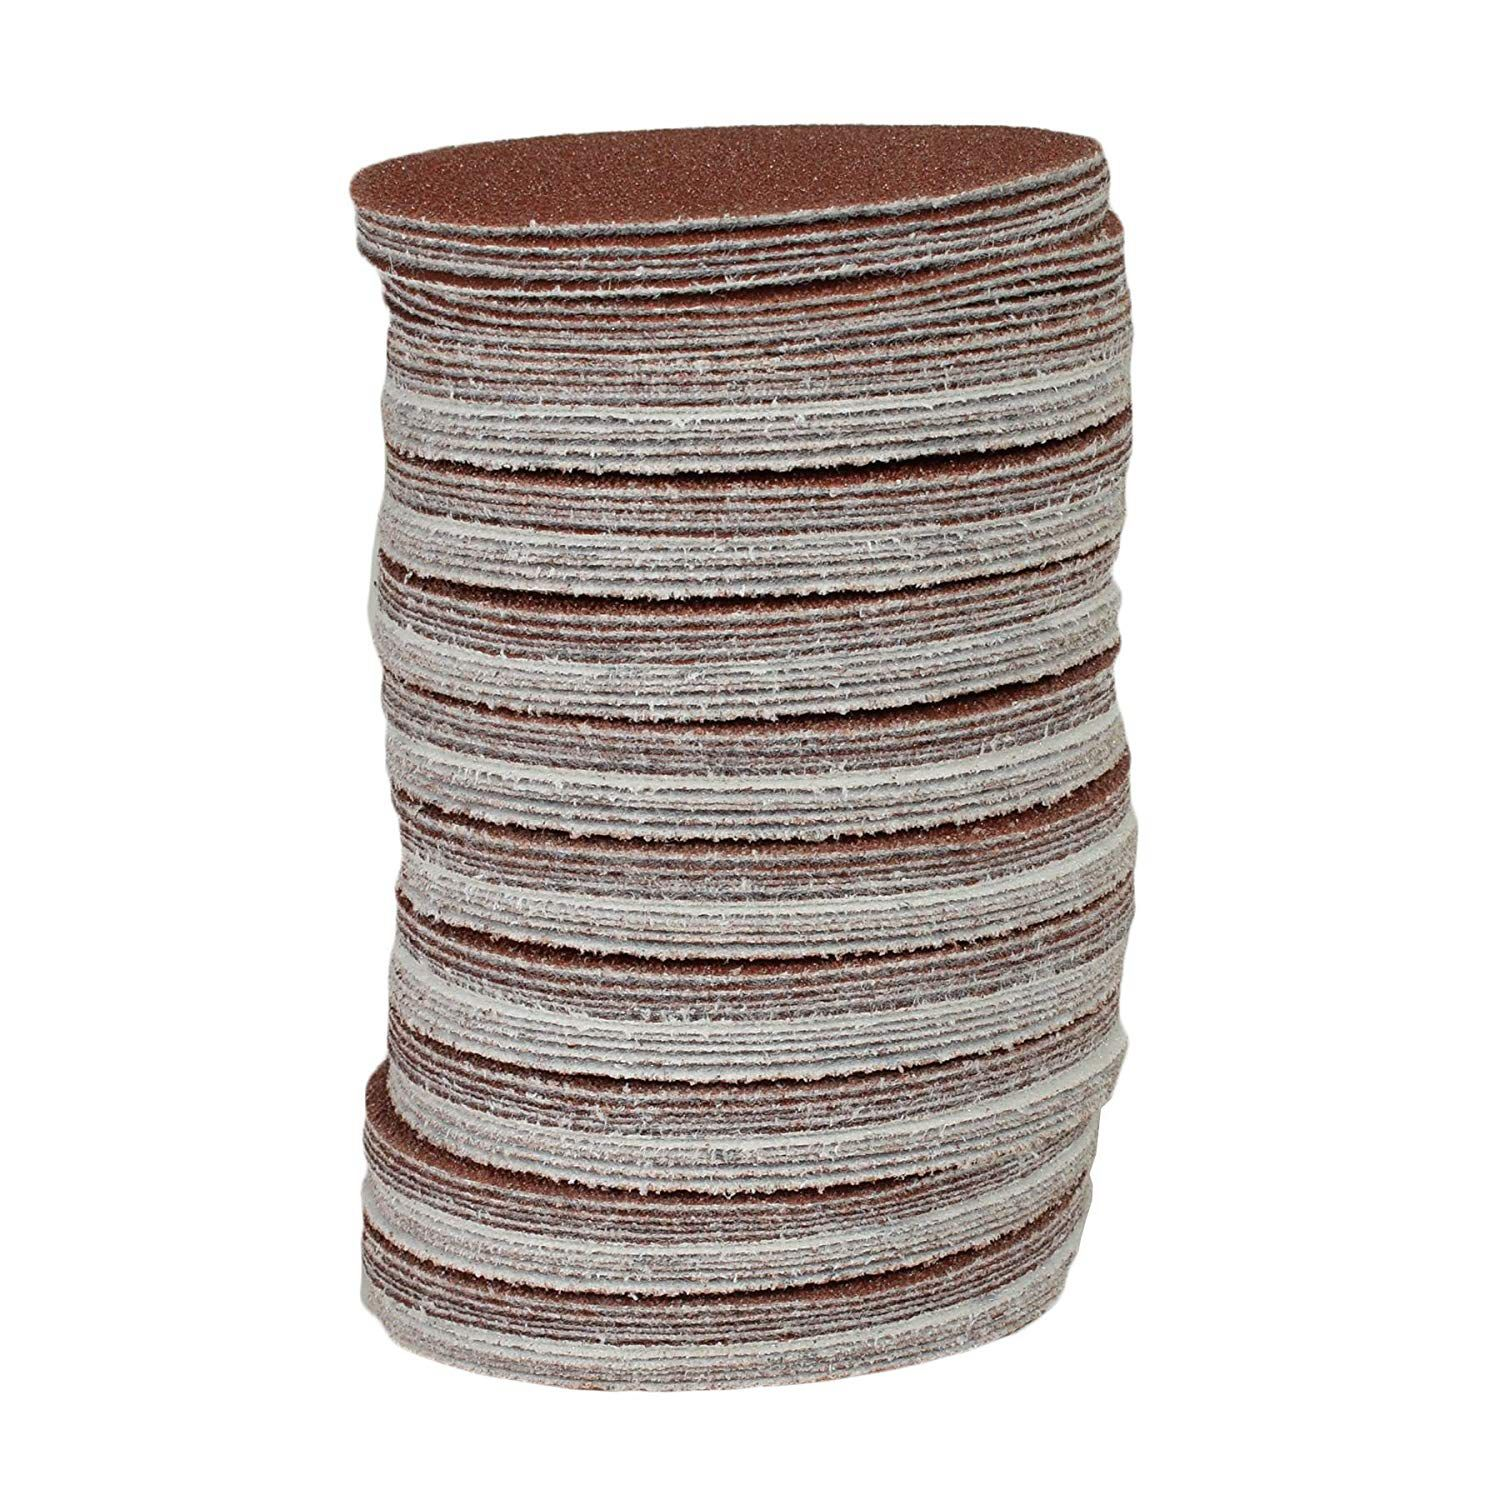 100pcs Hook And Loop DA Sanding Grinding Abrasive Pad Mixed Grit 3inch 75mm Sander Disk 40 80 100 180 240 Grit Abrasive Tools100pcs Hook And Loop DA Sanding Grinding Abrasive Pad Mixed Grit 3inch 75mm Sander Disk 40 80 100 180 240 Grit Abrasive Tools